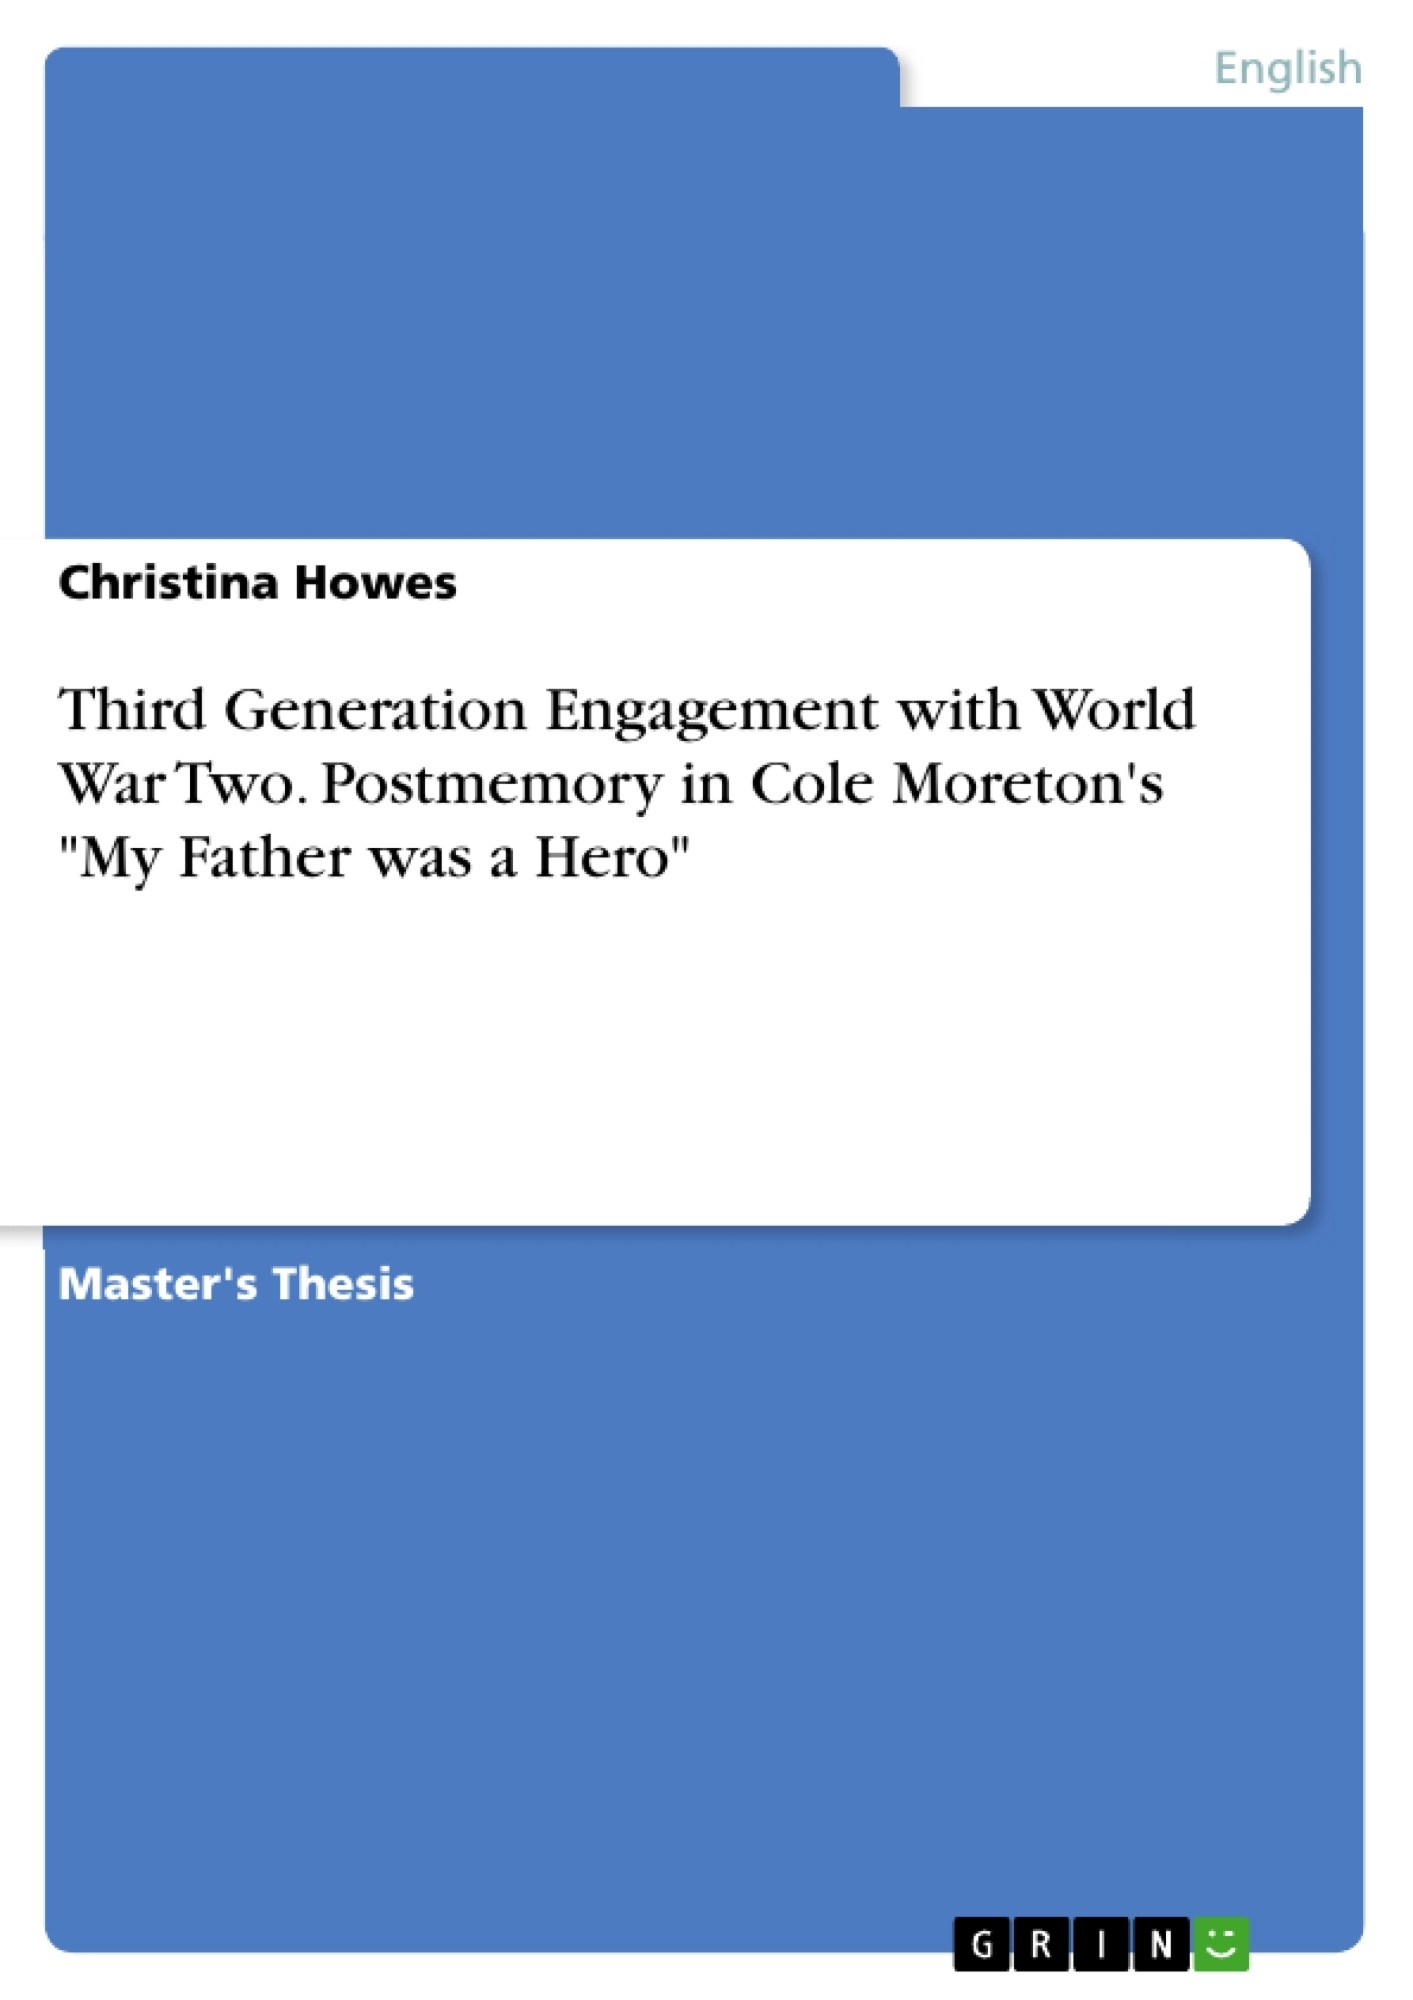 grin third generation engagement with world war two postmemory in cole moreton s my father was a hero